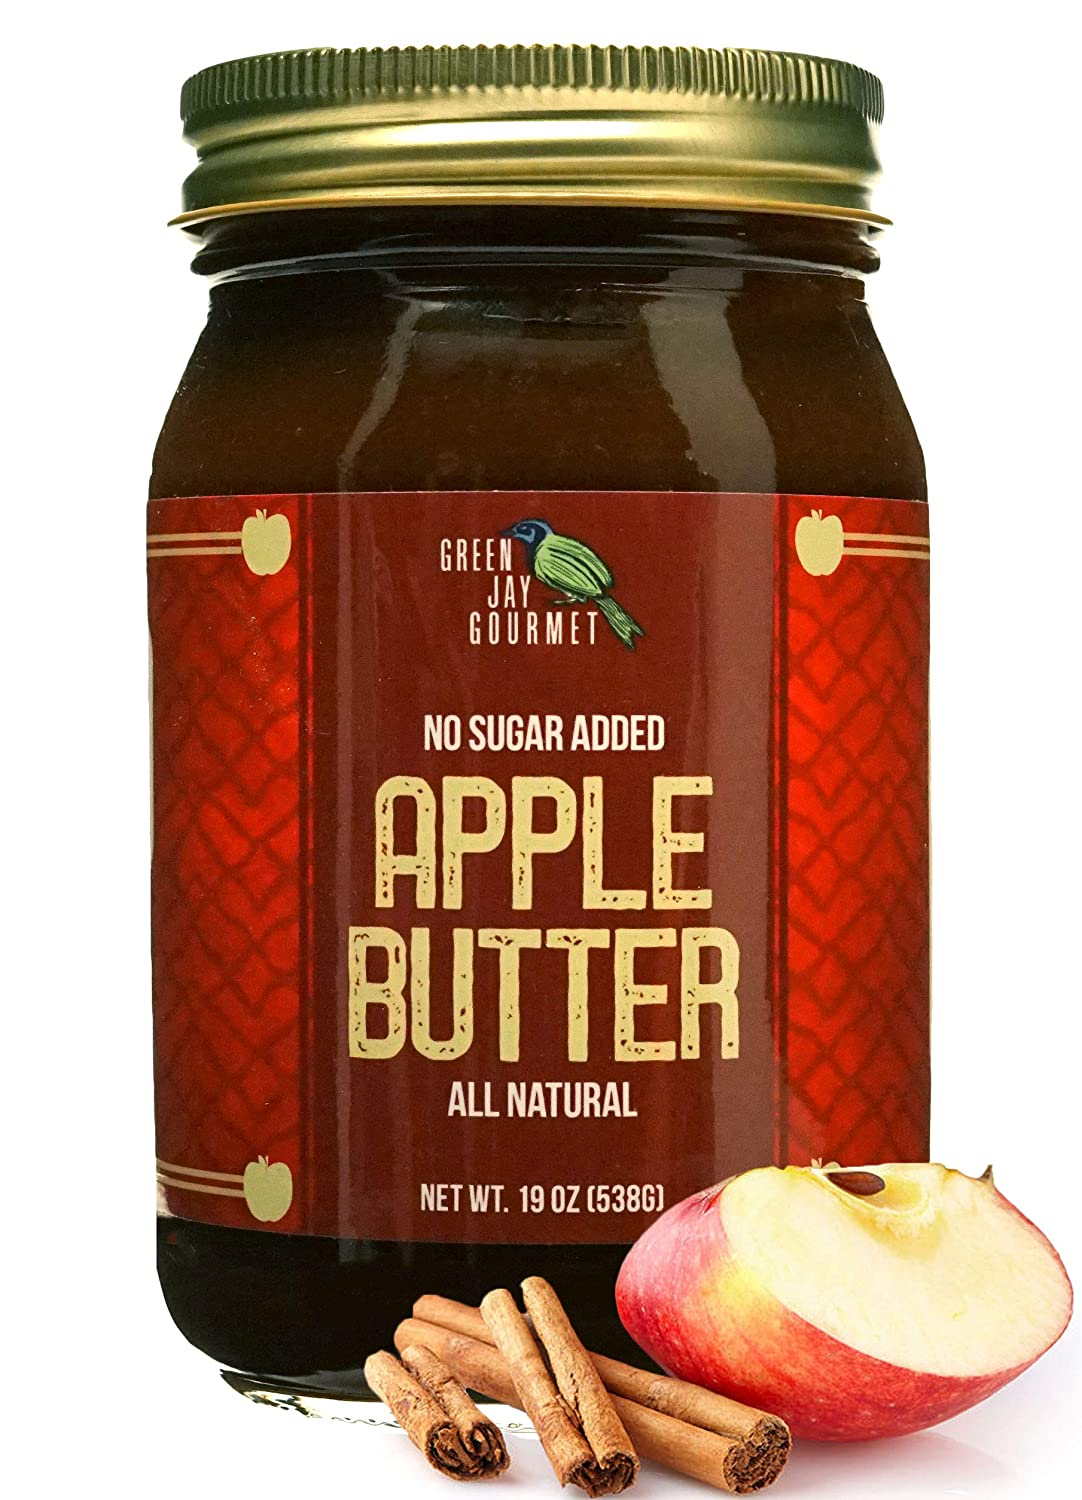 Green Jay Gourmet Low Sugar Apple Butter - All-Natural, Gluten-Free Fruit Spread - Apple Spread with Apples, Cinnamon & Spices - Gourmet Fruit Butter - No Added Sugar or Corn Syrup - 19 Ounces